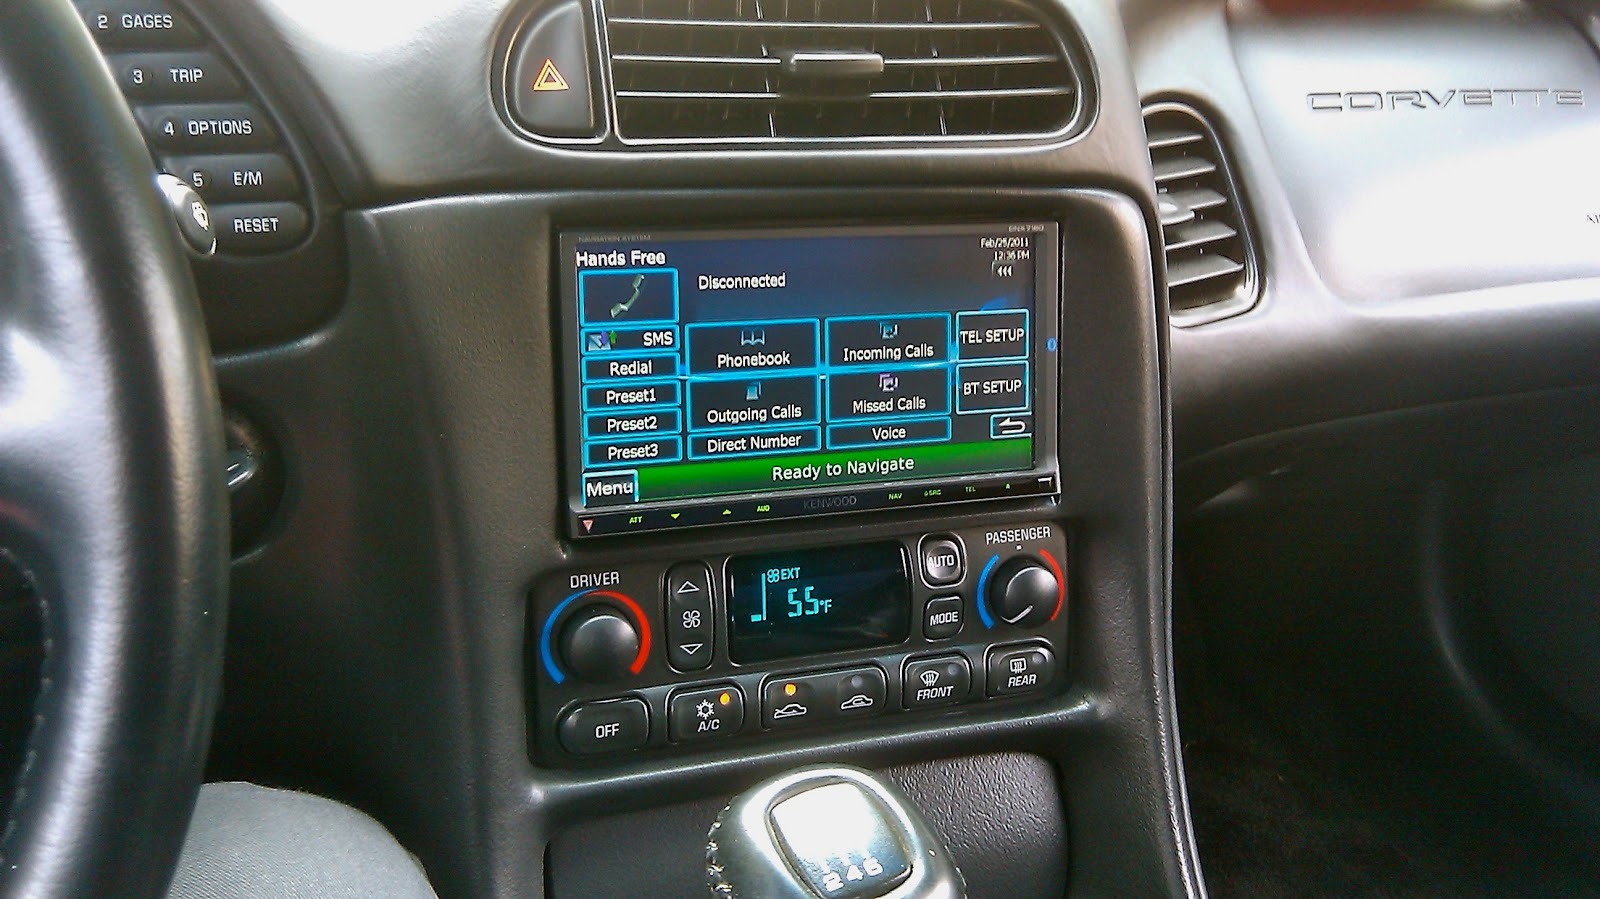 2003 Honda Accord Double Din Radio Car Wiring Harness 87 Perfect Kenwood Installed Corvette One Of The Best Jeremy Vasquez 1600x899